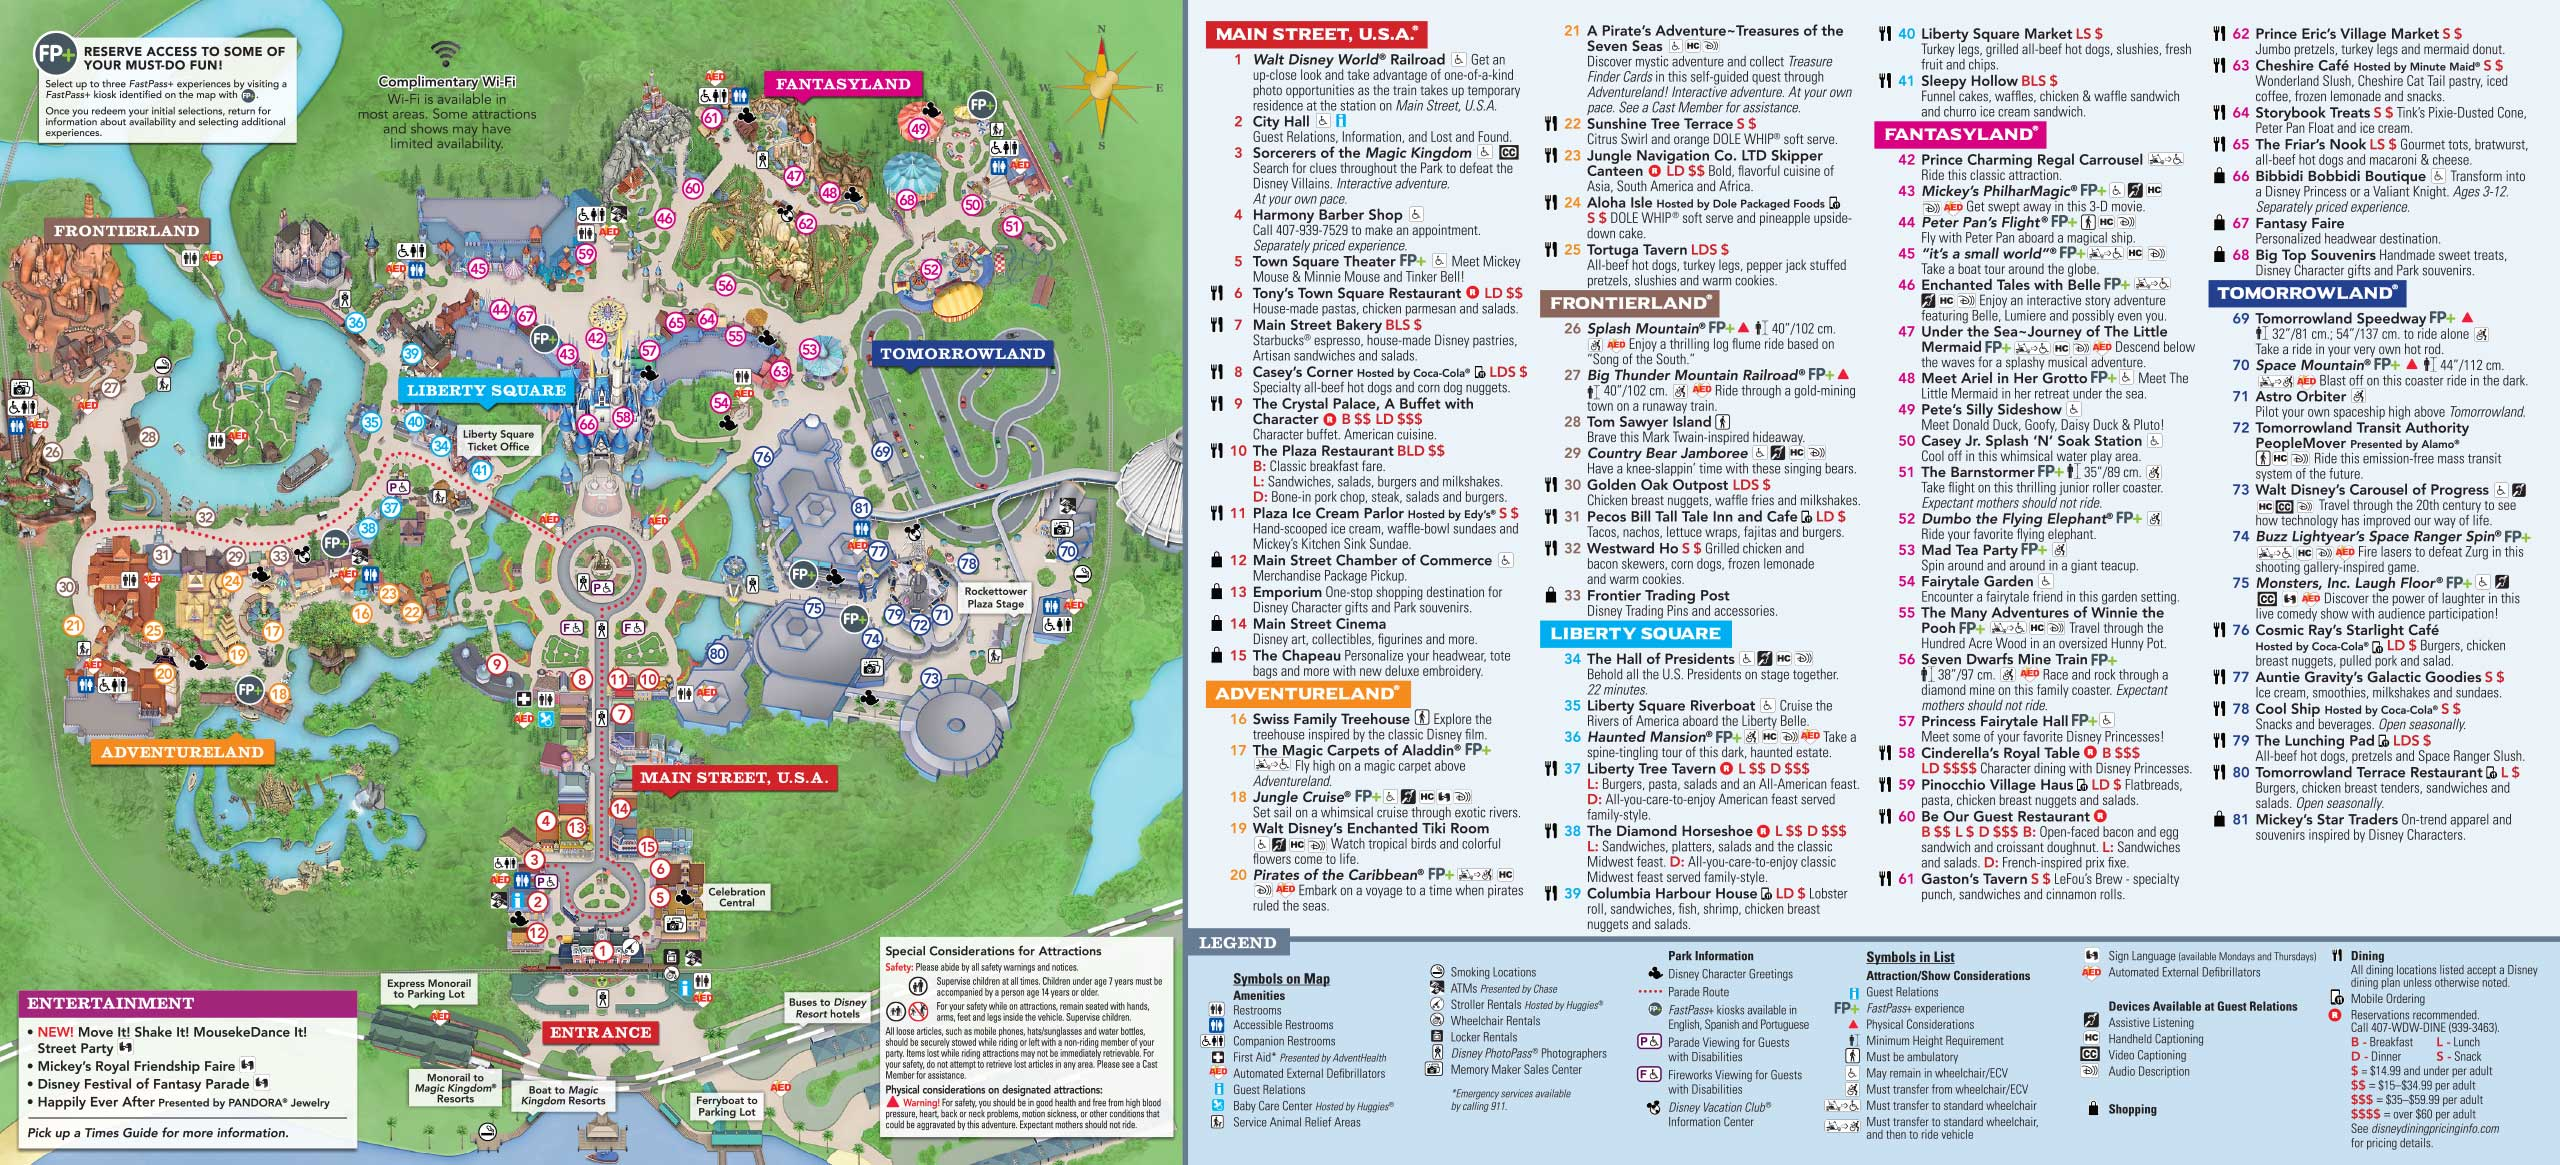 January 2019 Walt Disney World Park Maps - Photo 2 of 14 on